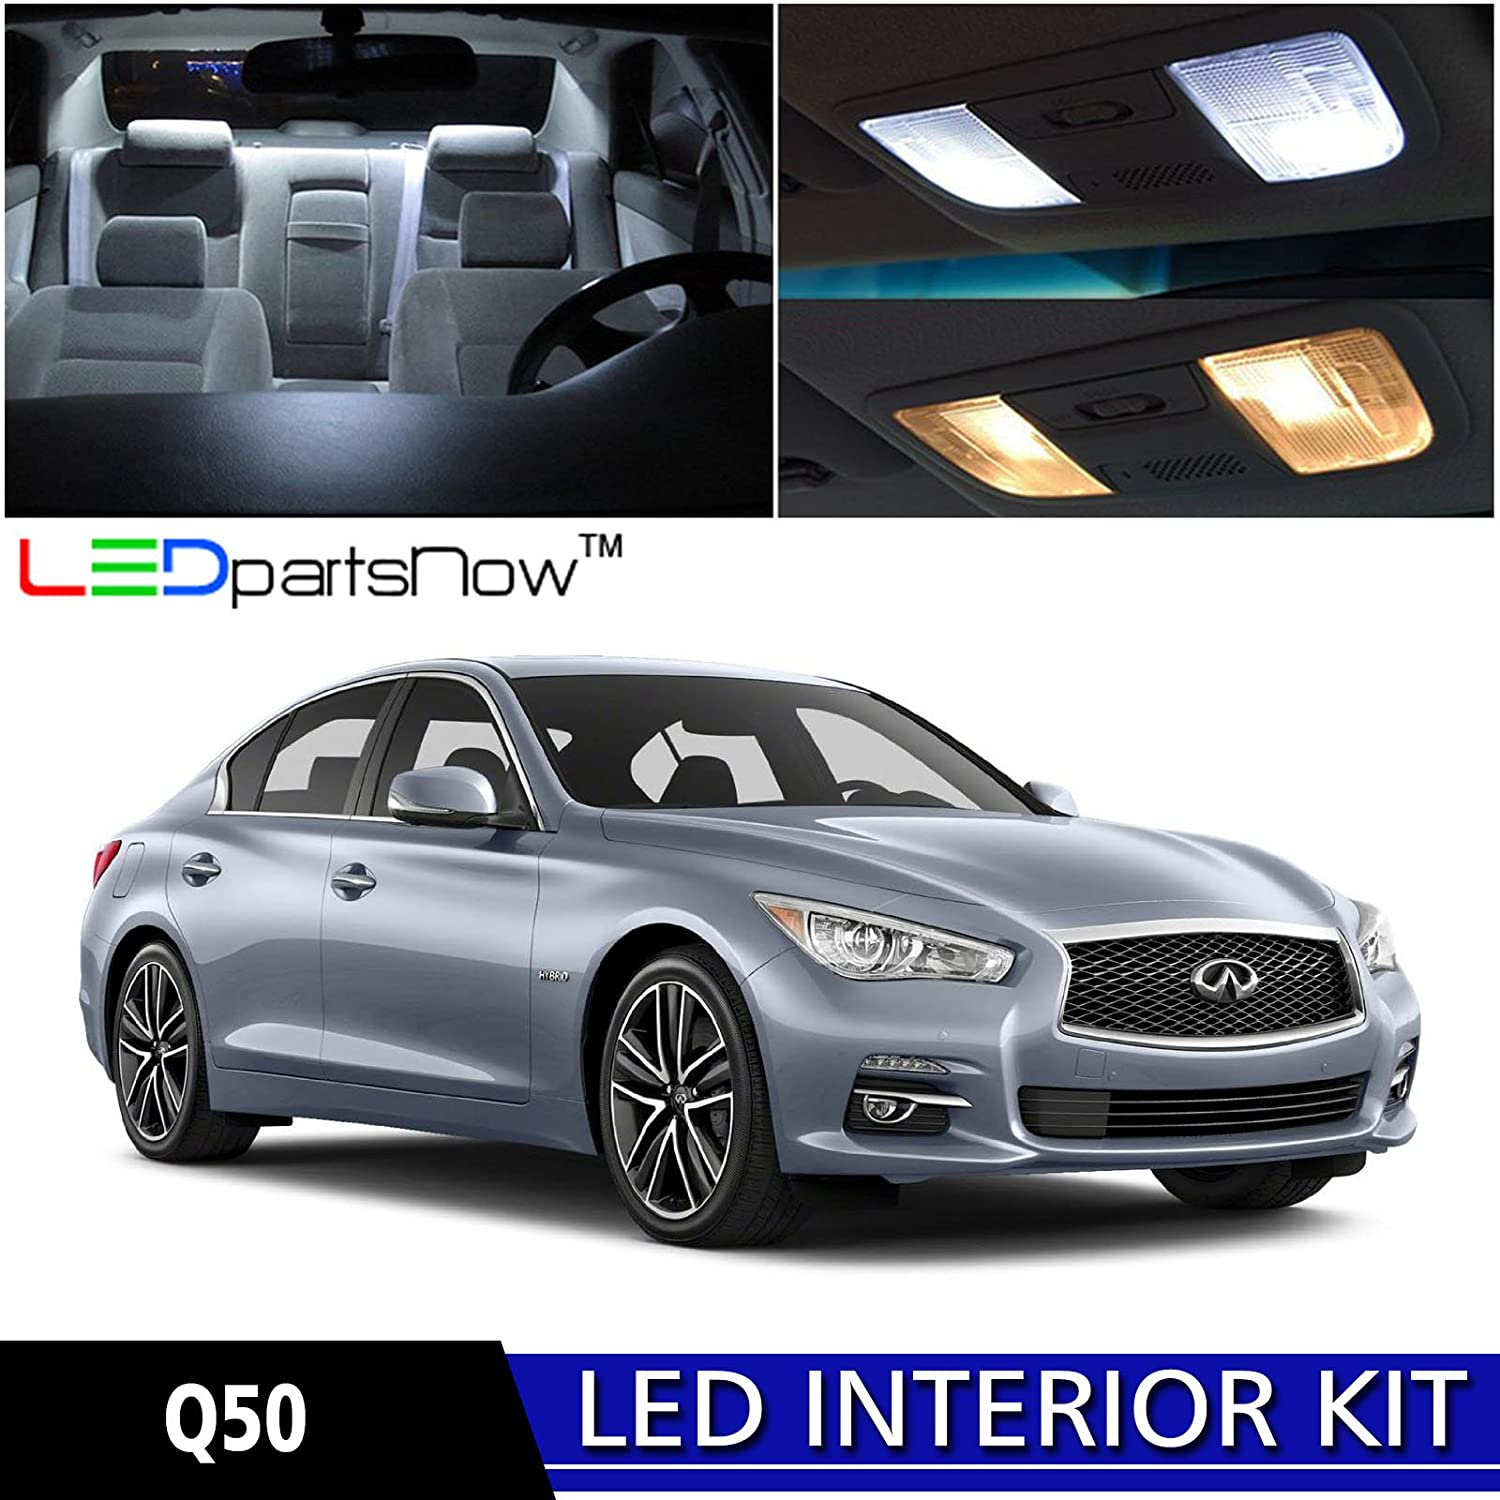 infiniti q50 2015 white. amazoncom ledpartsnow 20142015 infiniti q50 led interior lights accessories replacement package kit 10 pieces white tool automotive 2015 white